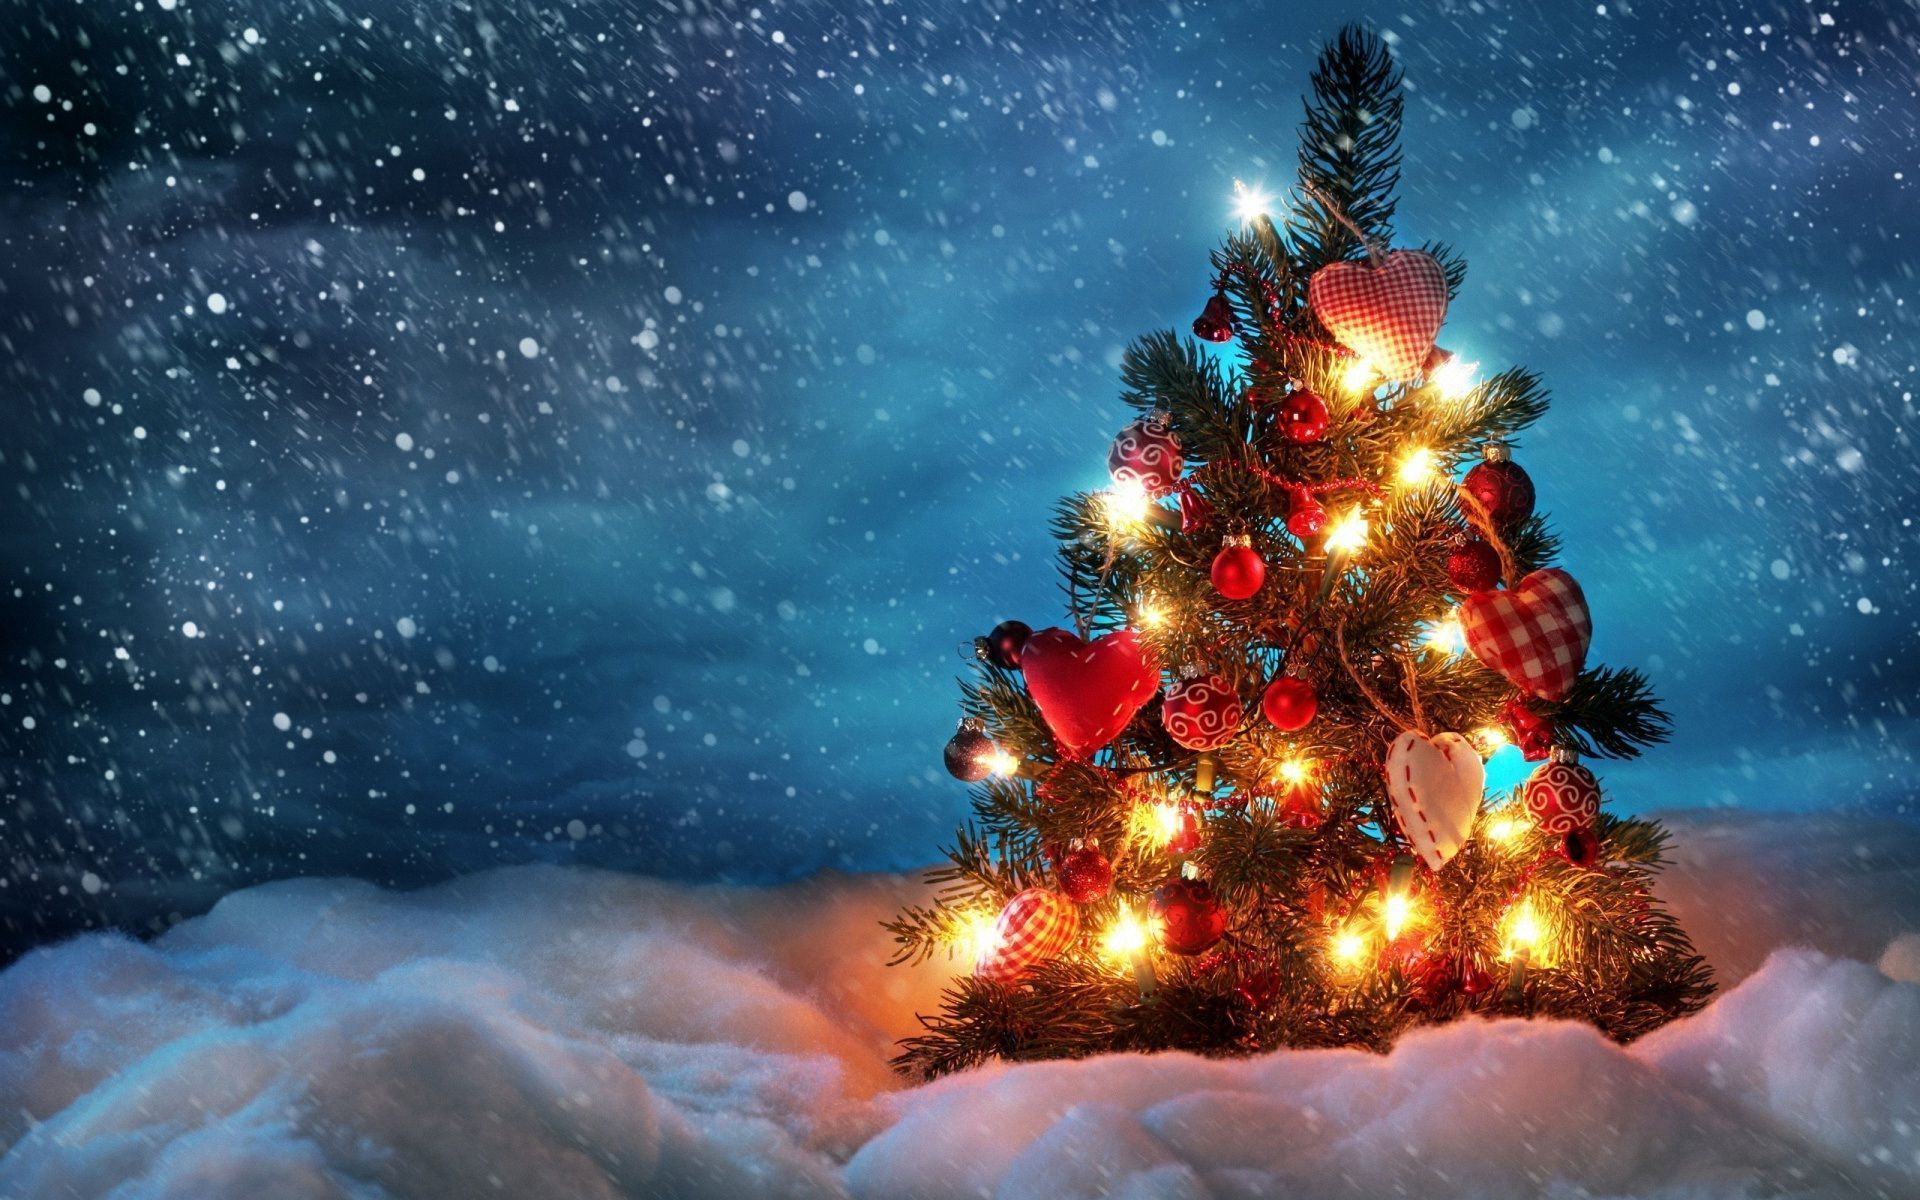 Free Wallpaper Christmas Tree Part - 48: Christmas Tree Wallpaper High Quality Resolution